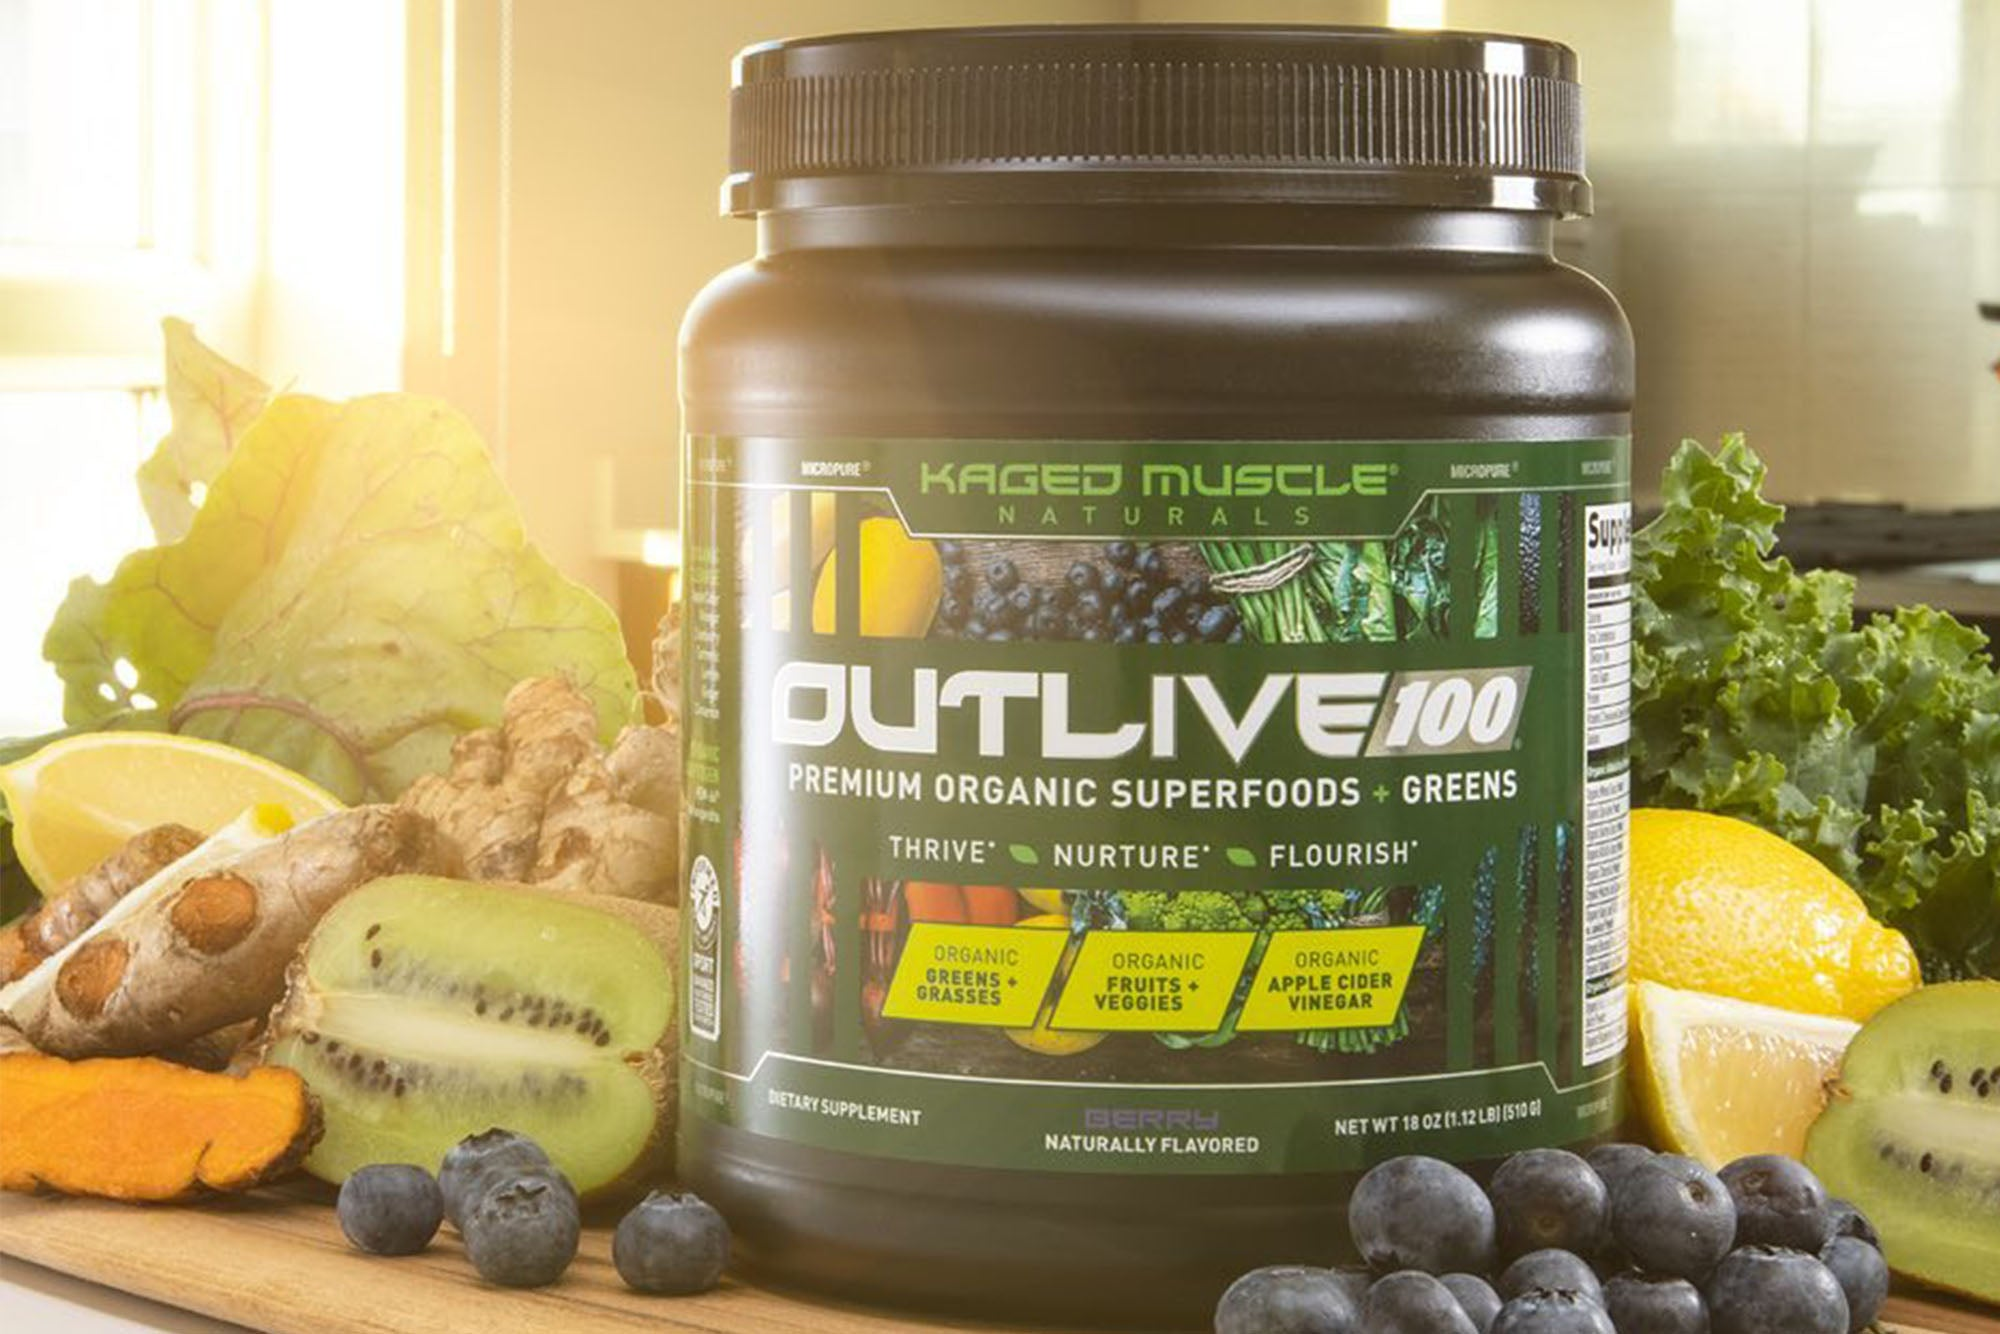 Outlive 100 Super Smoothie Recipe